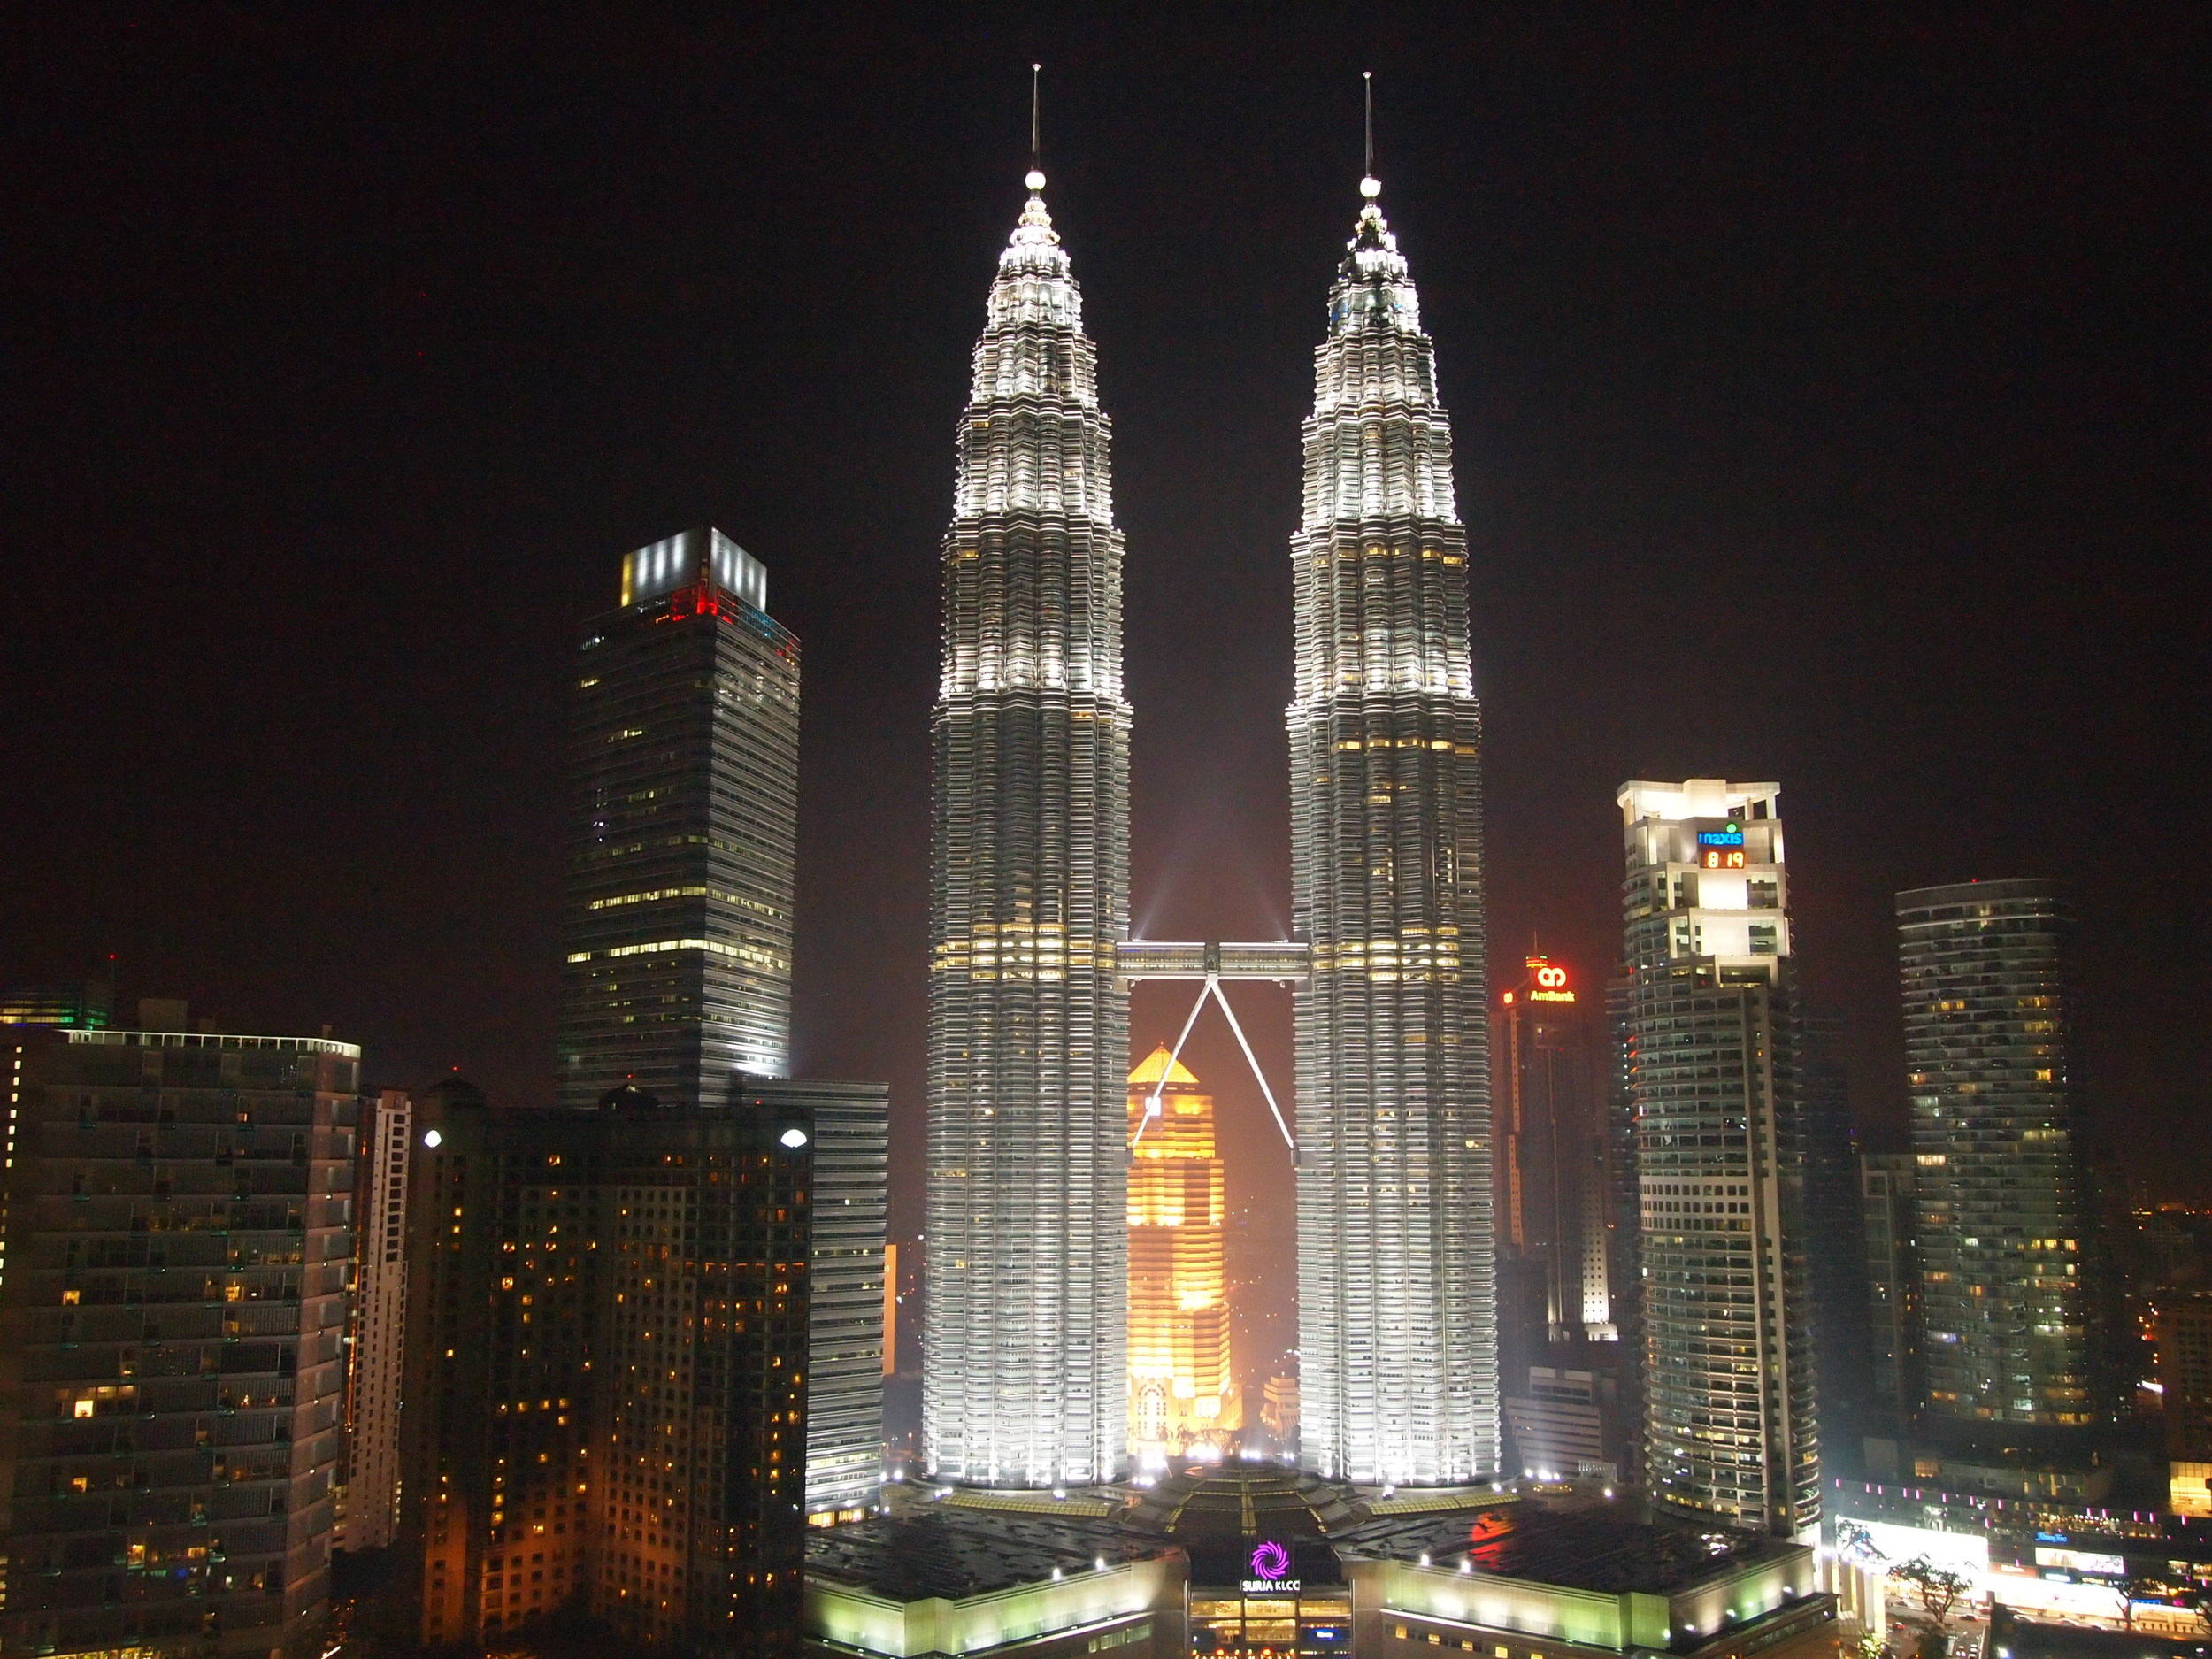 Kuala Lumpur. Petronas Towers. Bonus points if you remember them featured in the movie Entrapment!